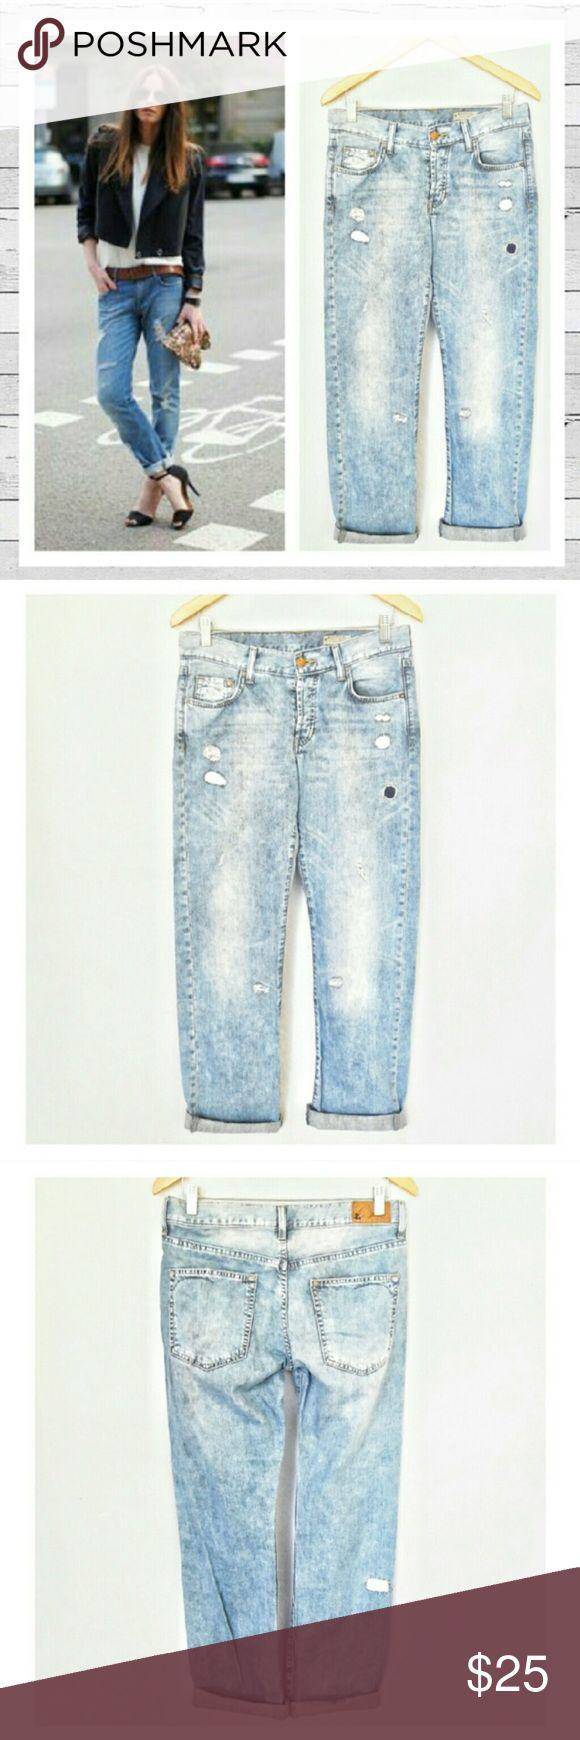 Boyfriend Jeans 🎉 Casual and cute boyfriend jeans! Light wash, size 27. Very comfortable and in great condition. Bundle and save! 🎉😘 Brand is Ampersand, NOT J brand, tagged for views! J Brand Jeans Boyfriend